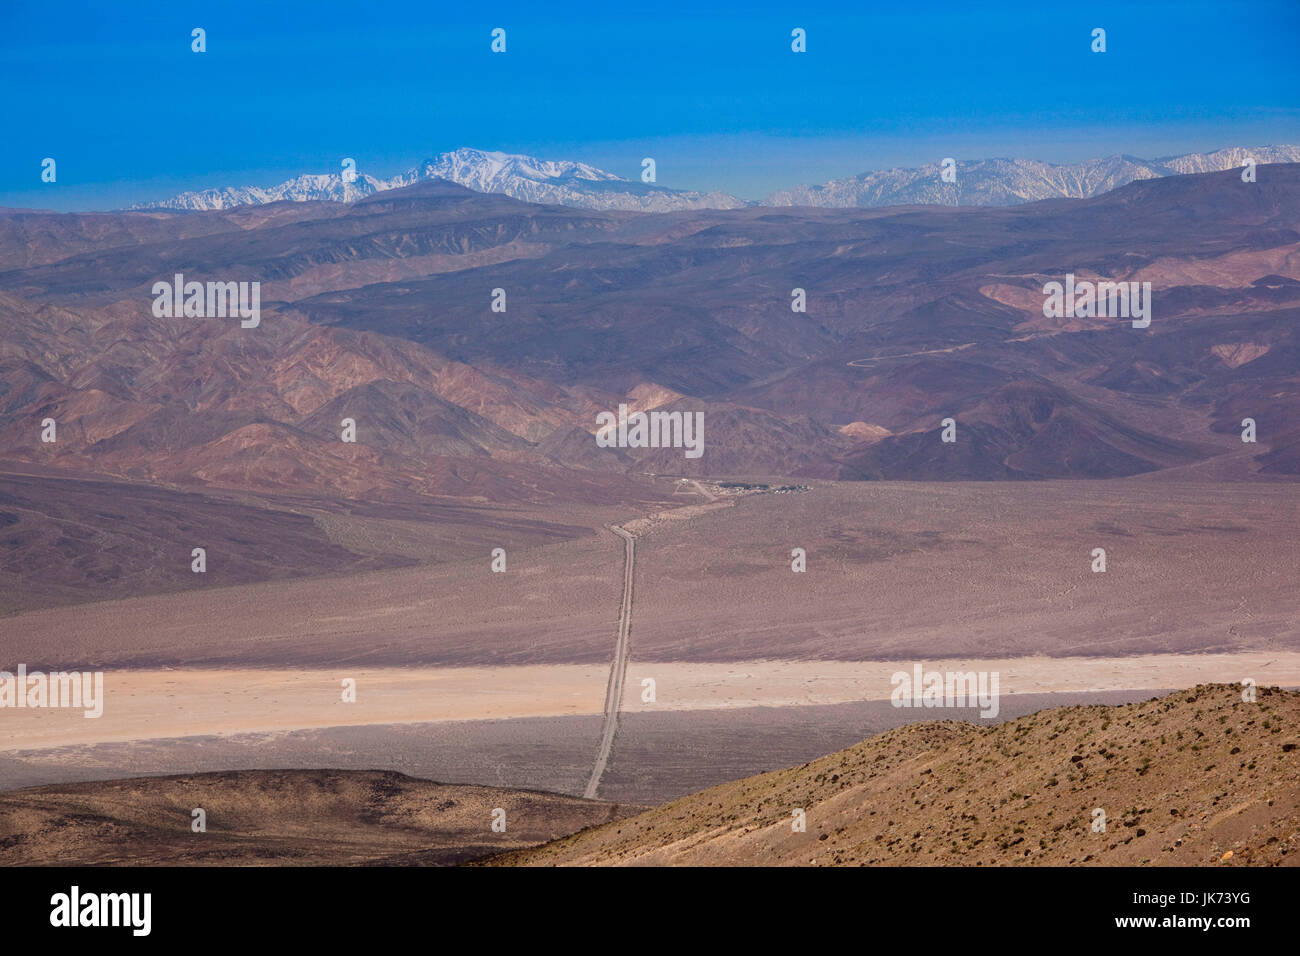 USA, California, Death Valley National Park, elevated view of Rt. 190 from Towne Pass, elevation 4956 feet Stock Photo